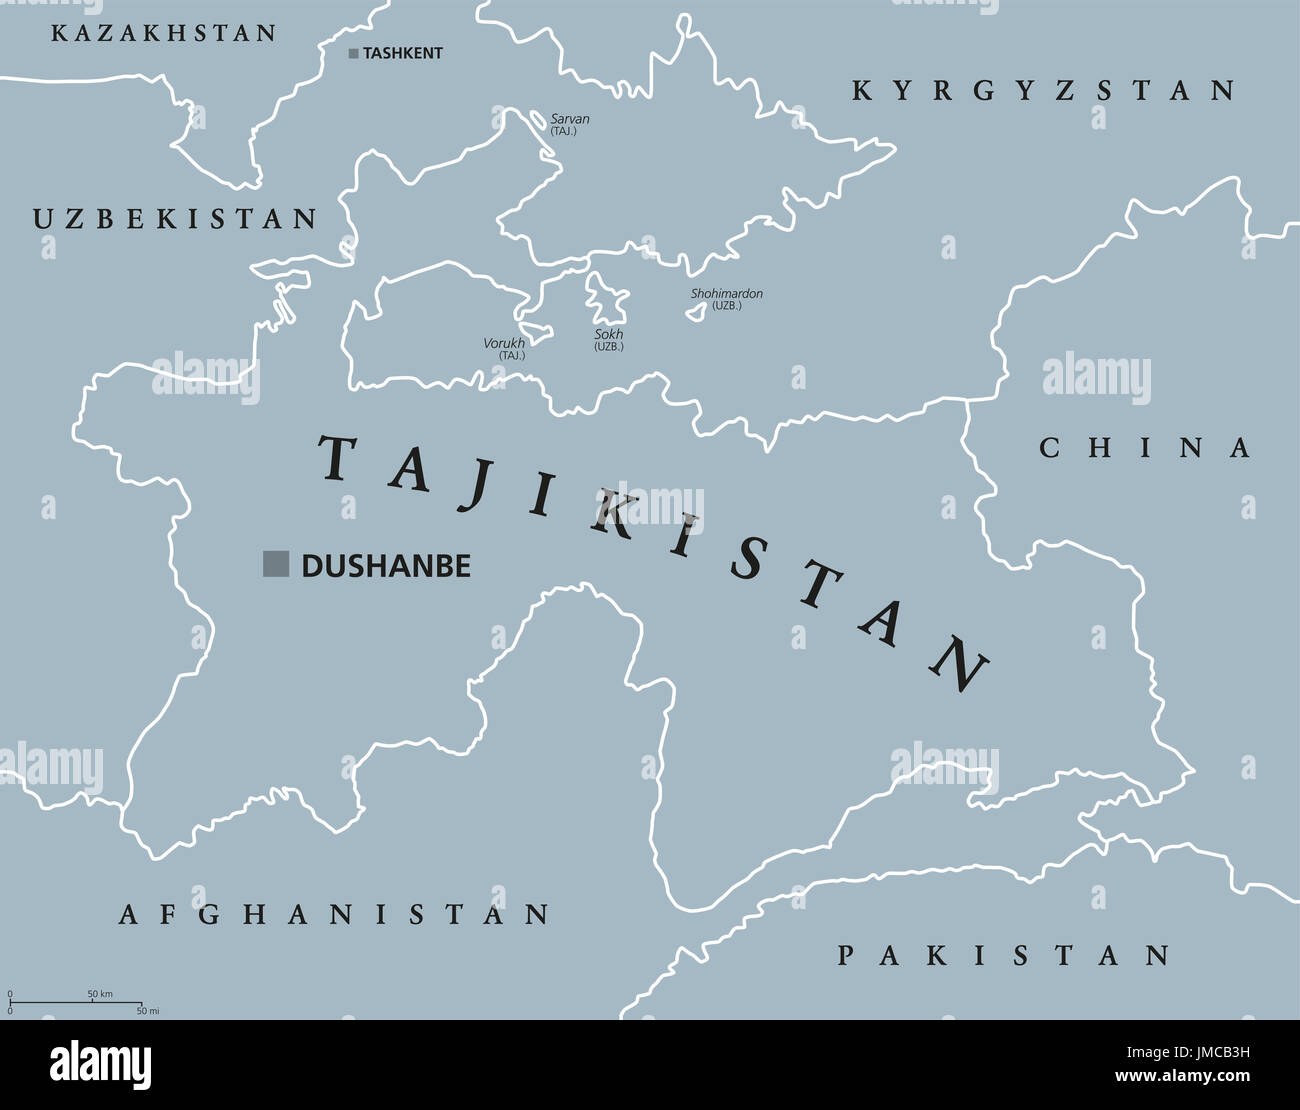 Tajikistan political map with capital Dushanbe and borders. Republic ...